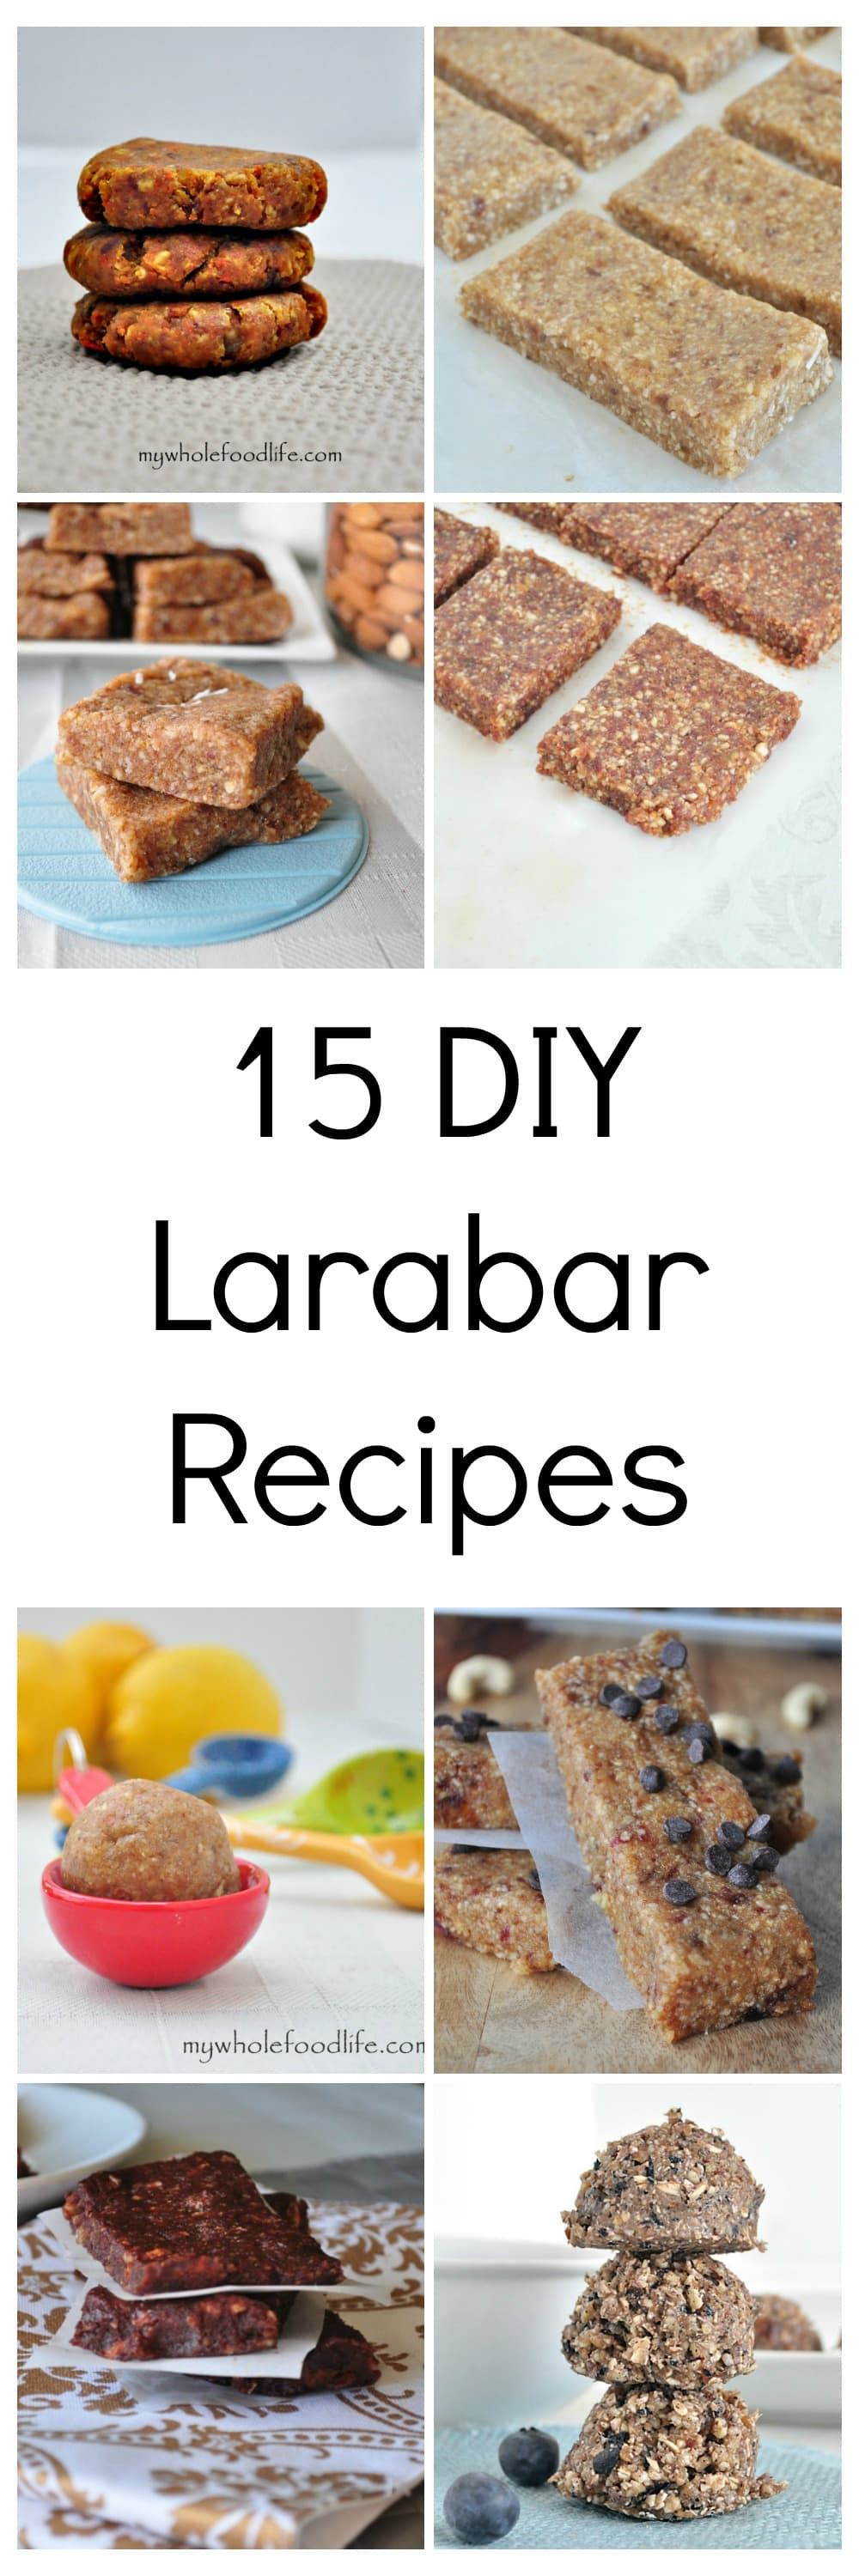 Larabar Collage Pinterest